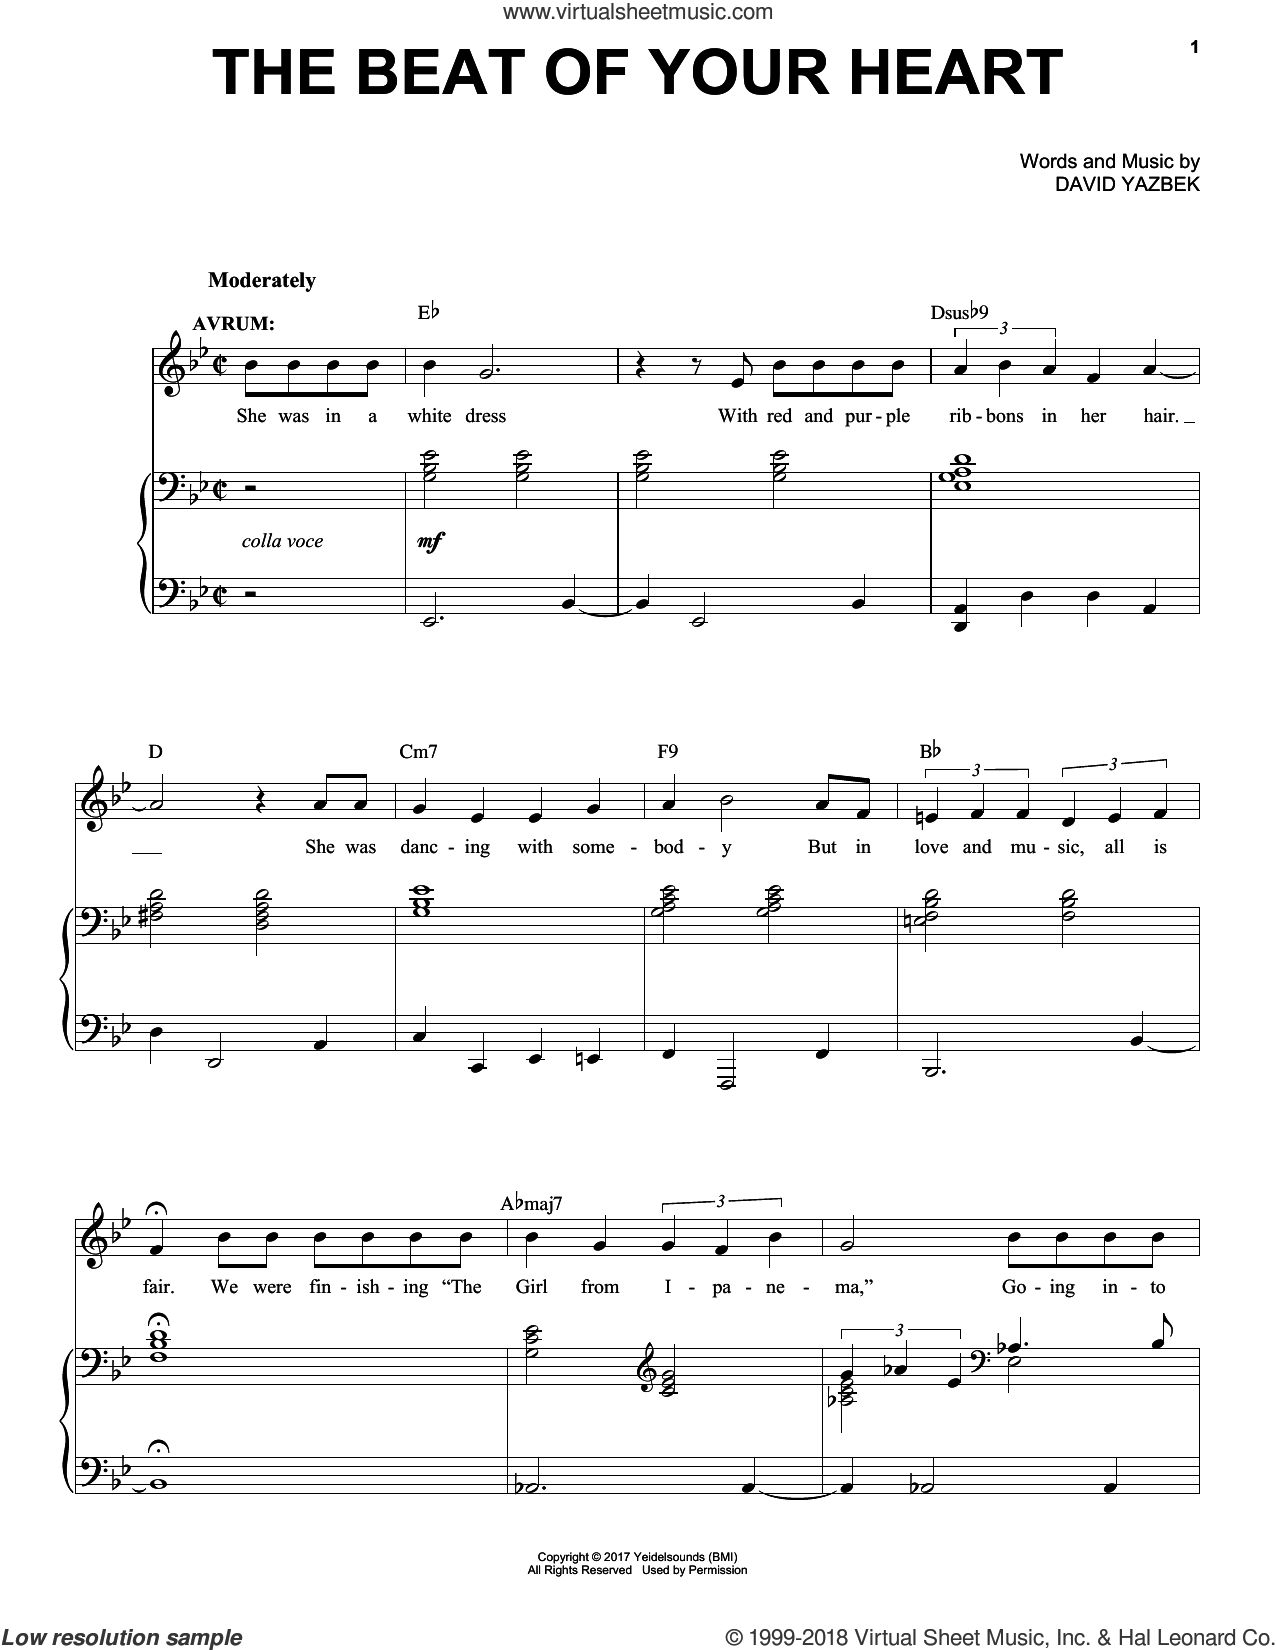 The Beat Of Your Heart sheet music for voice and piano by David Yazbek, intermediate skill level